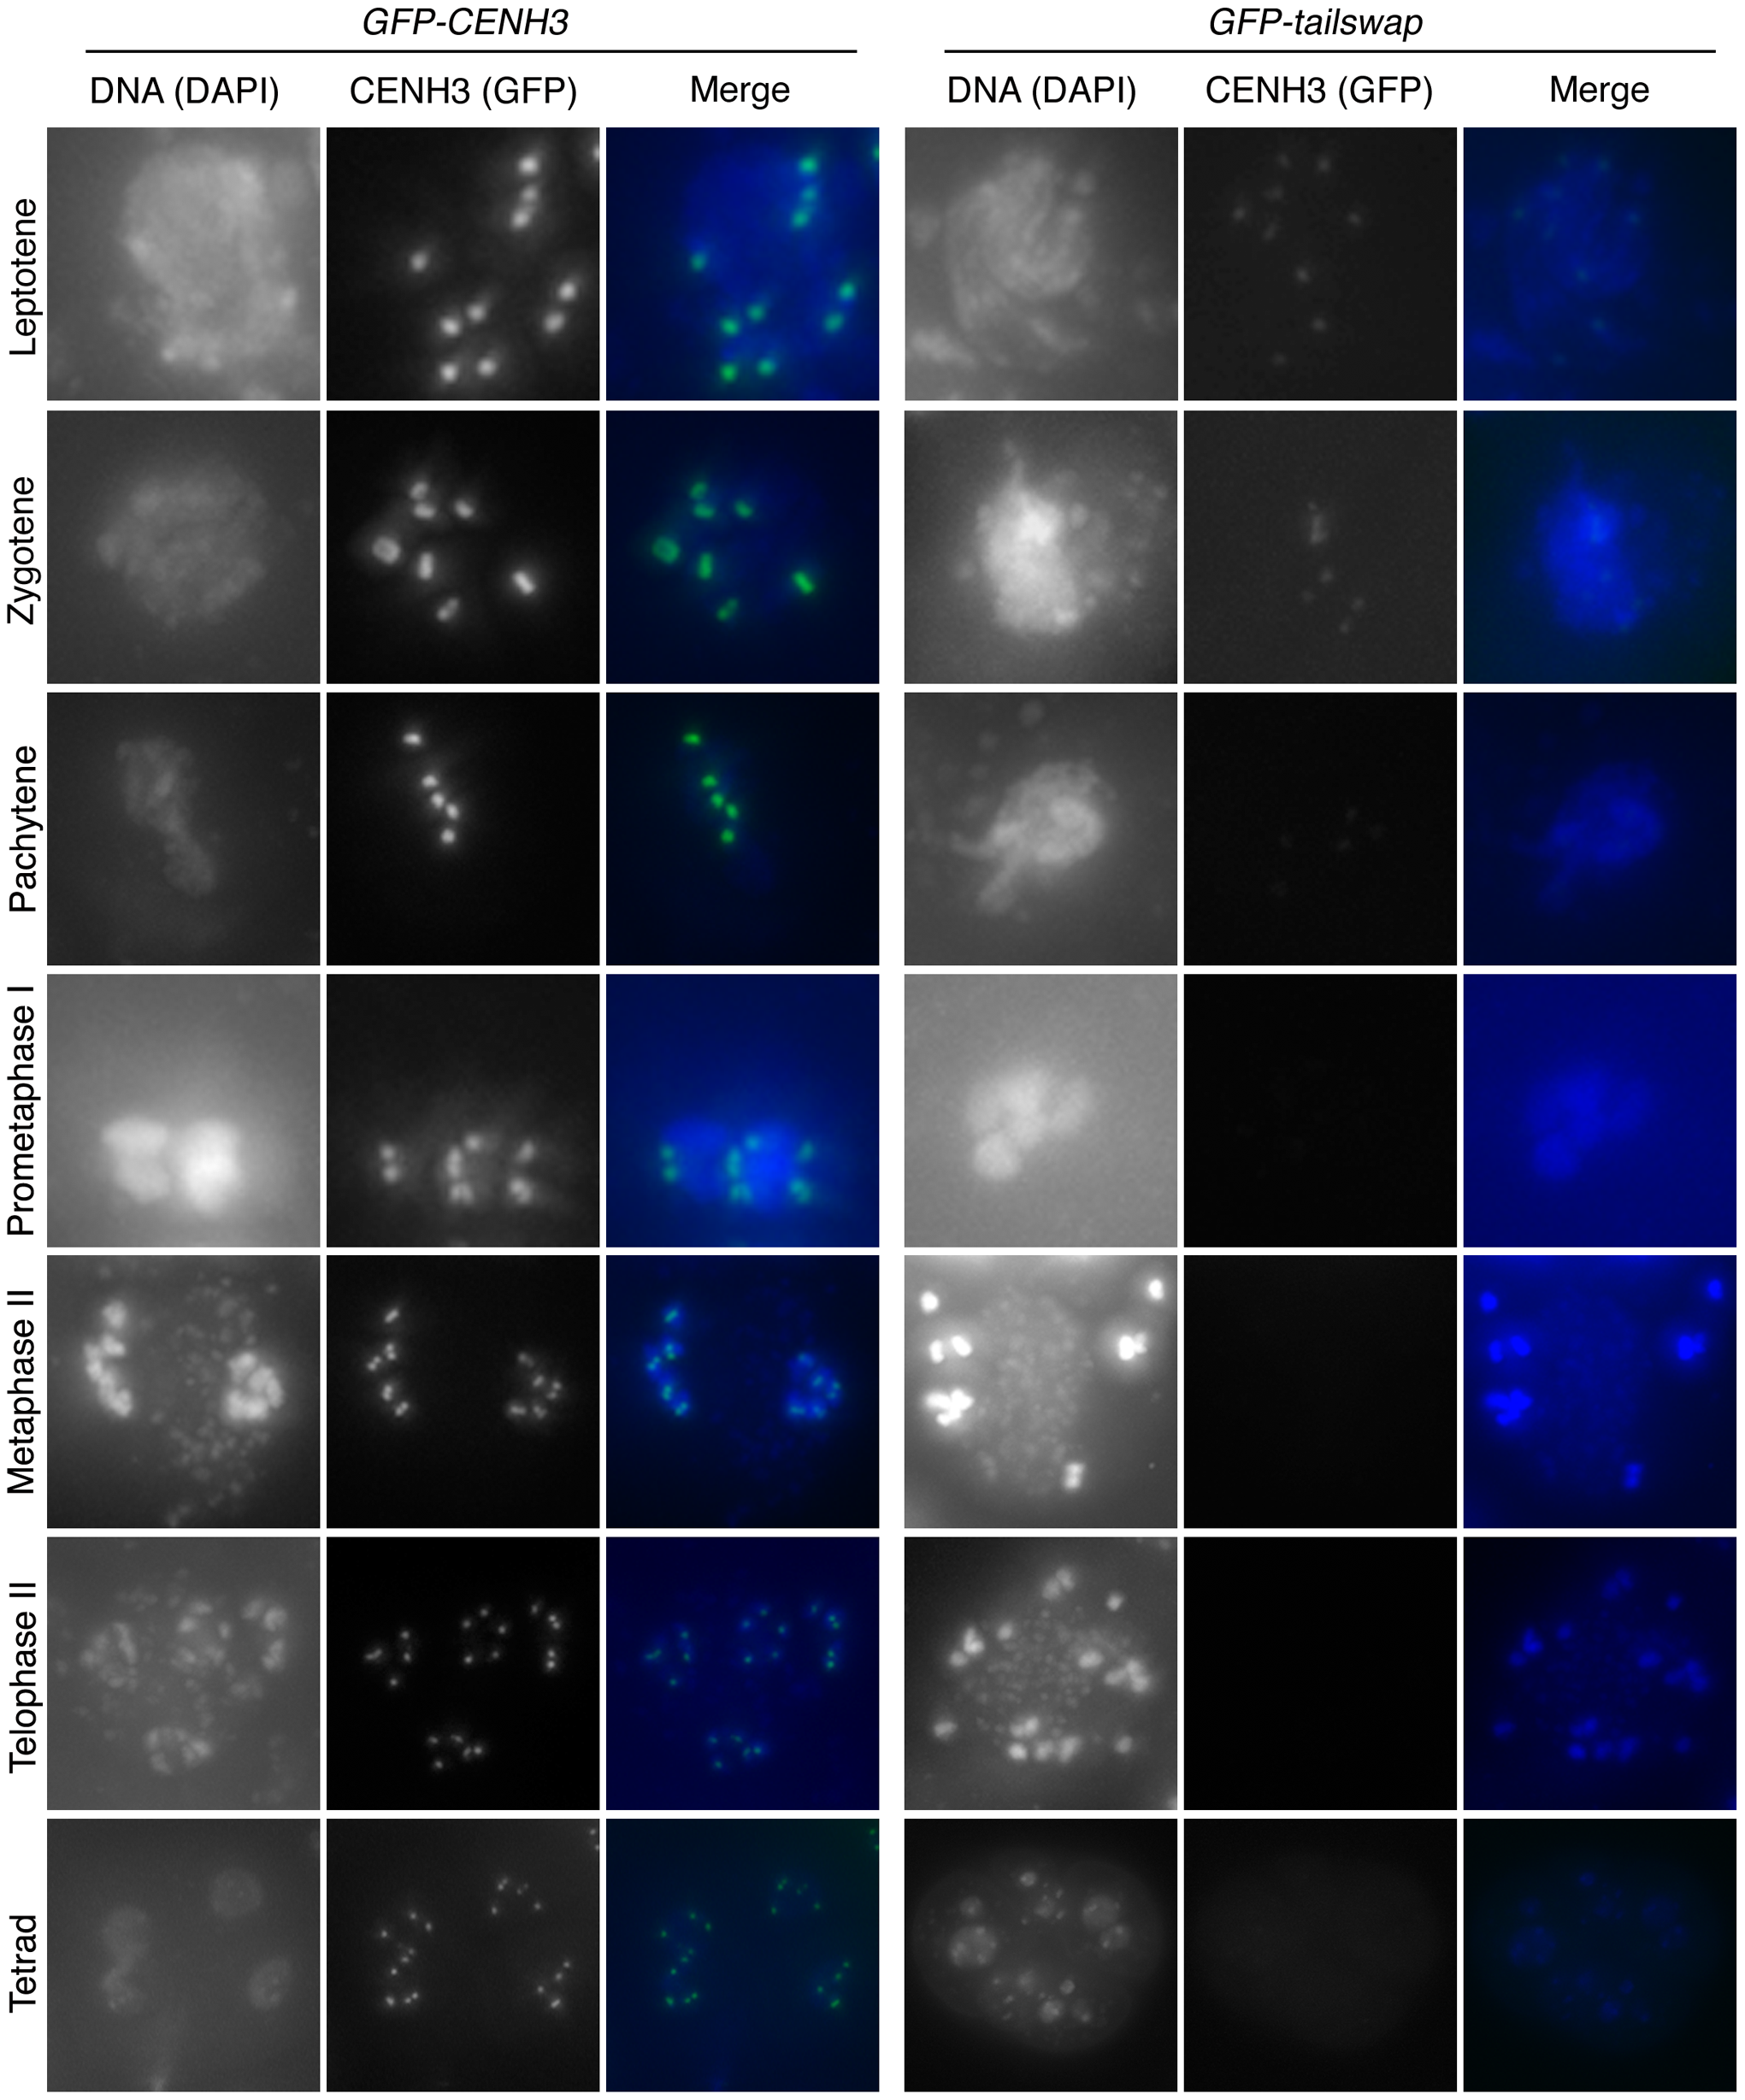 Depletion of GFP-tailswap protein from kinetochores continues progressively during meiosis.